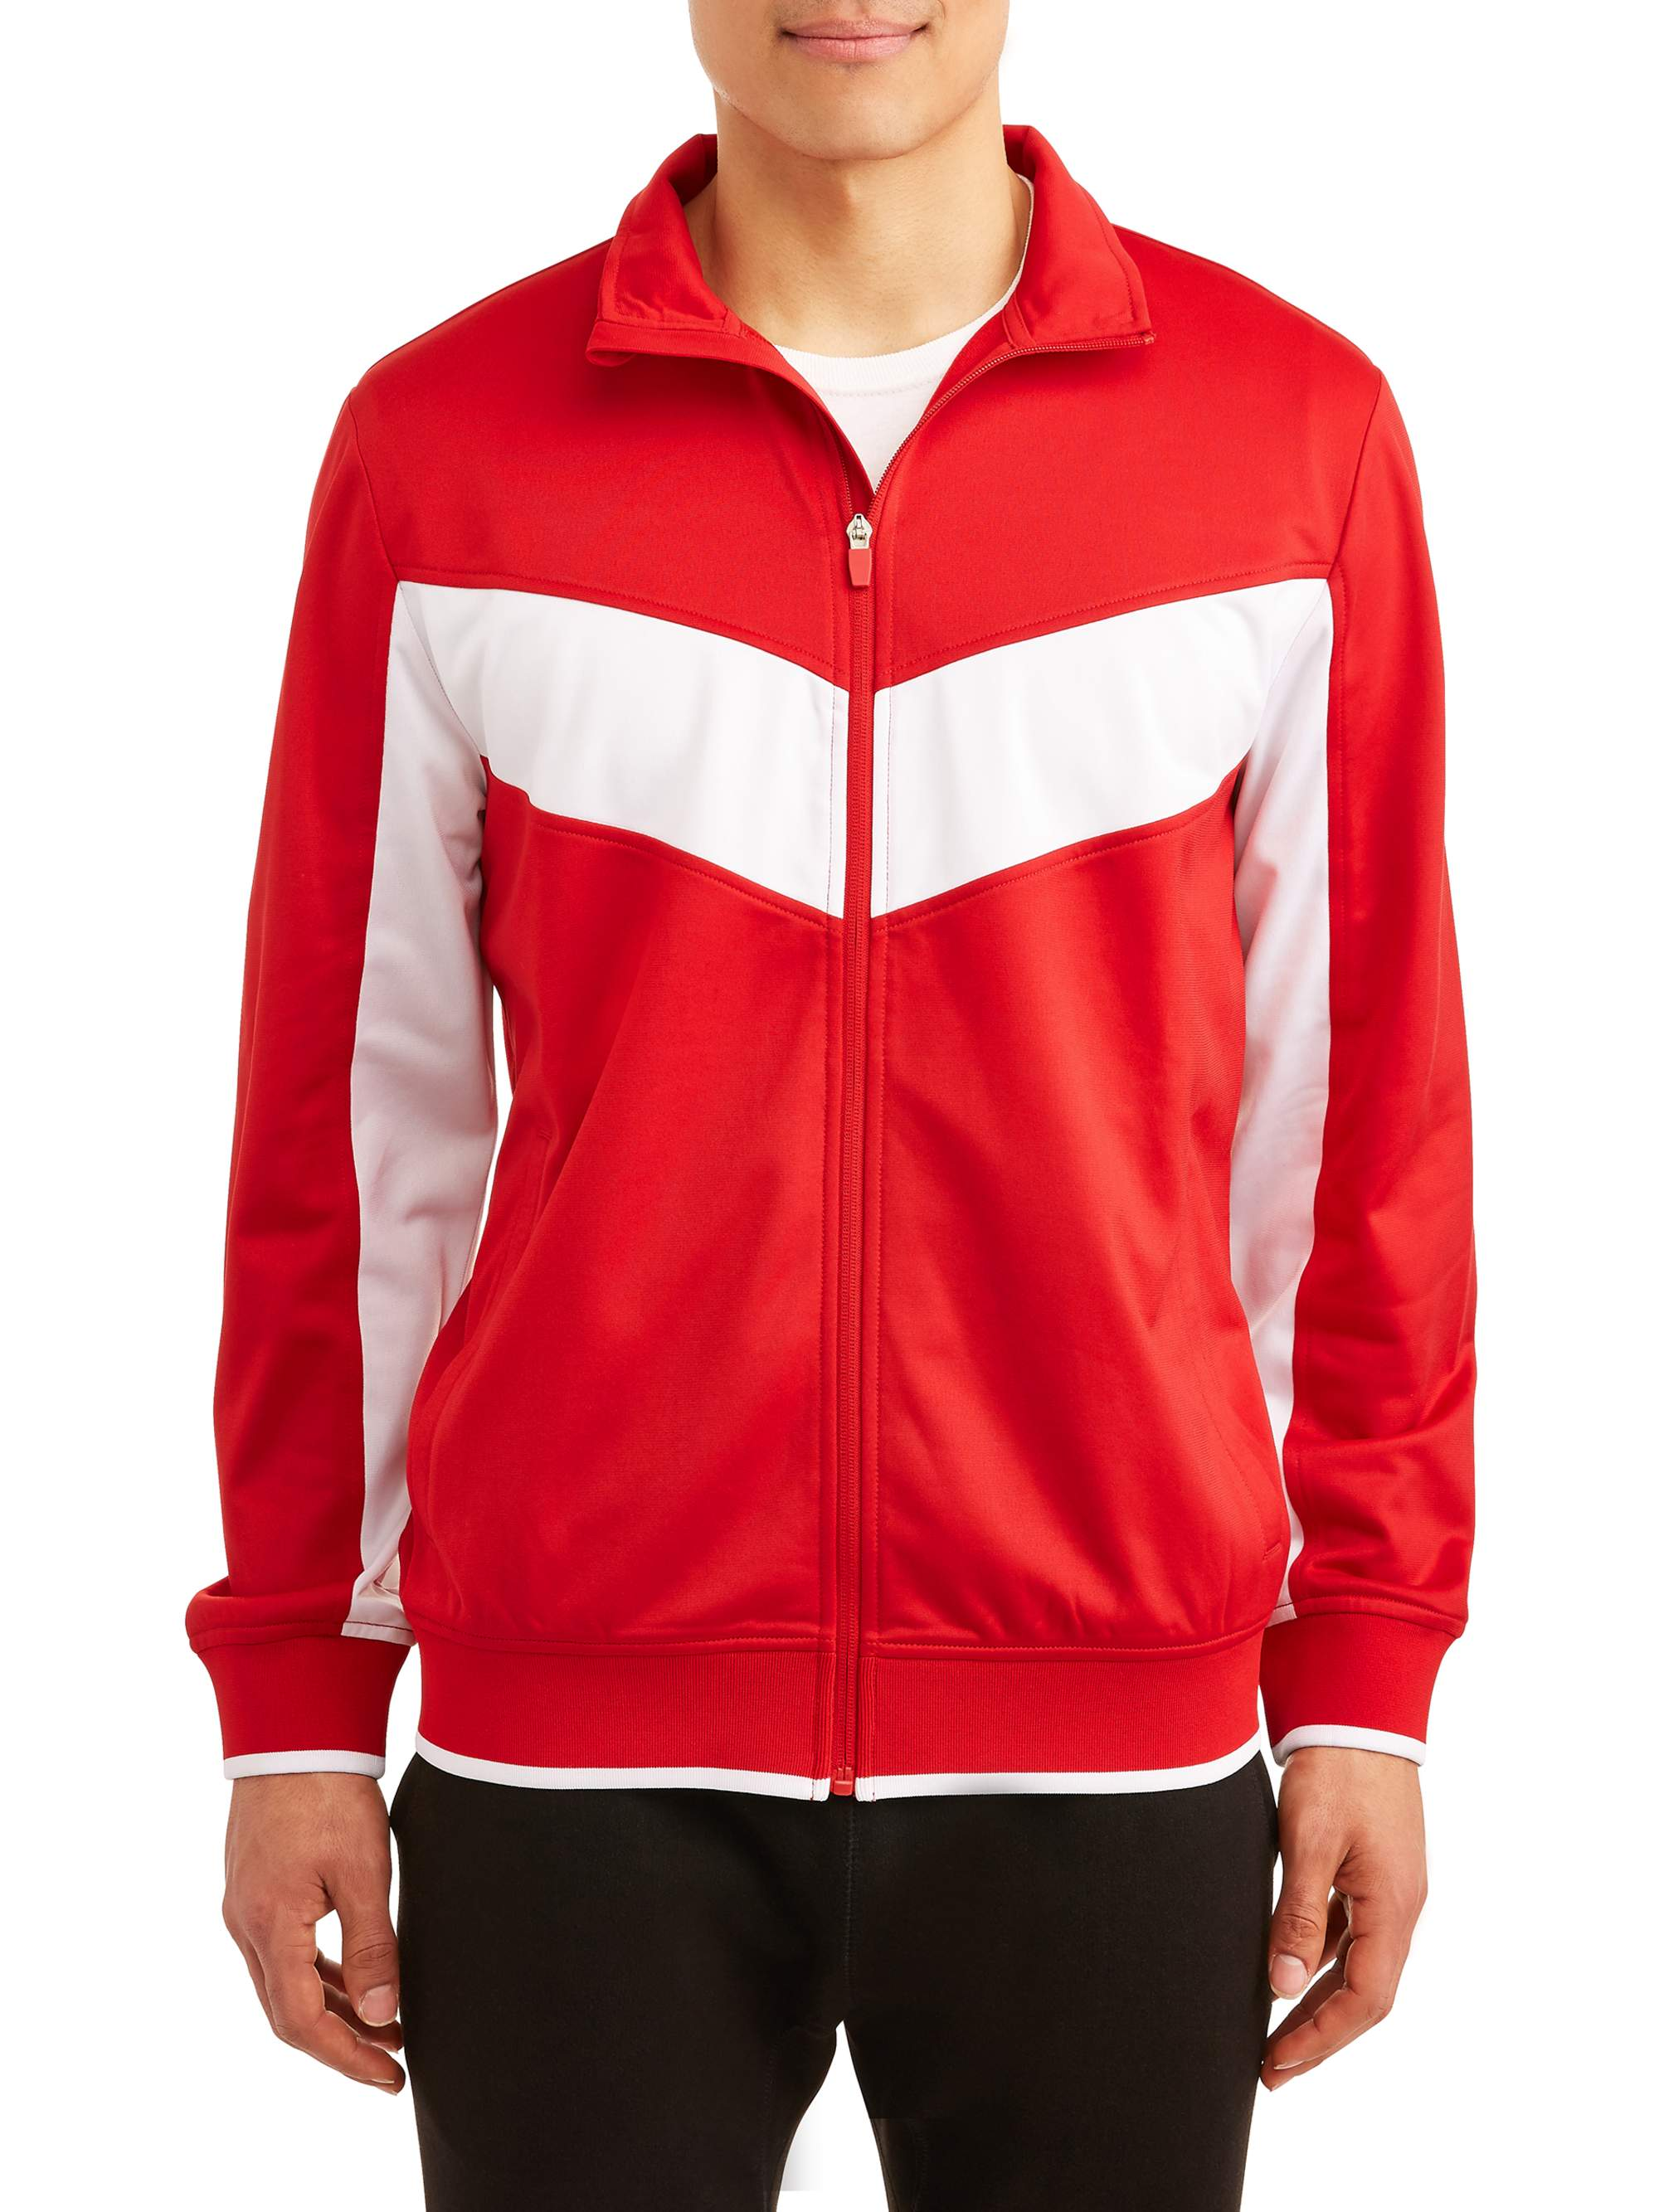 Russell Exclusive Men's Retro Track Jacket